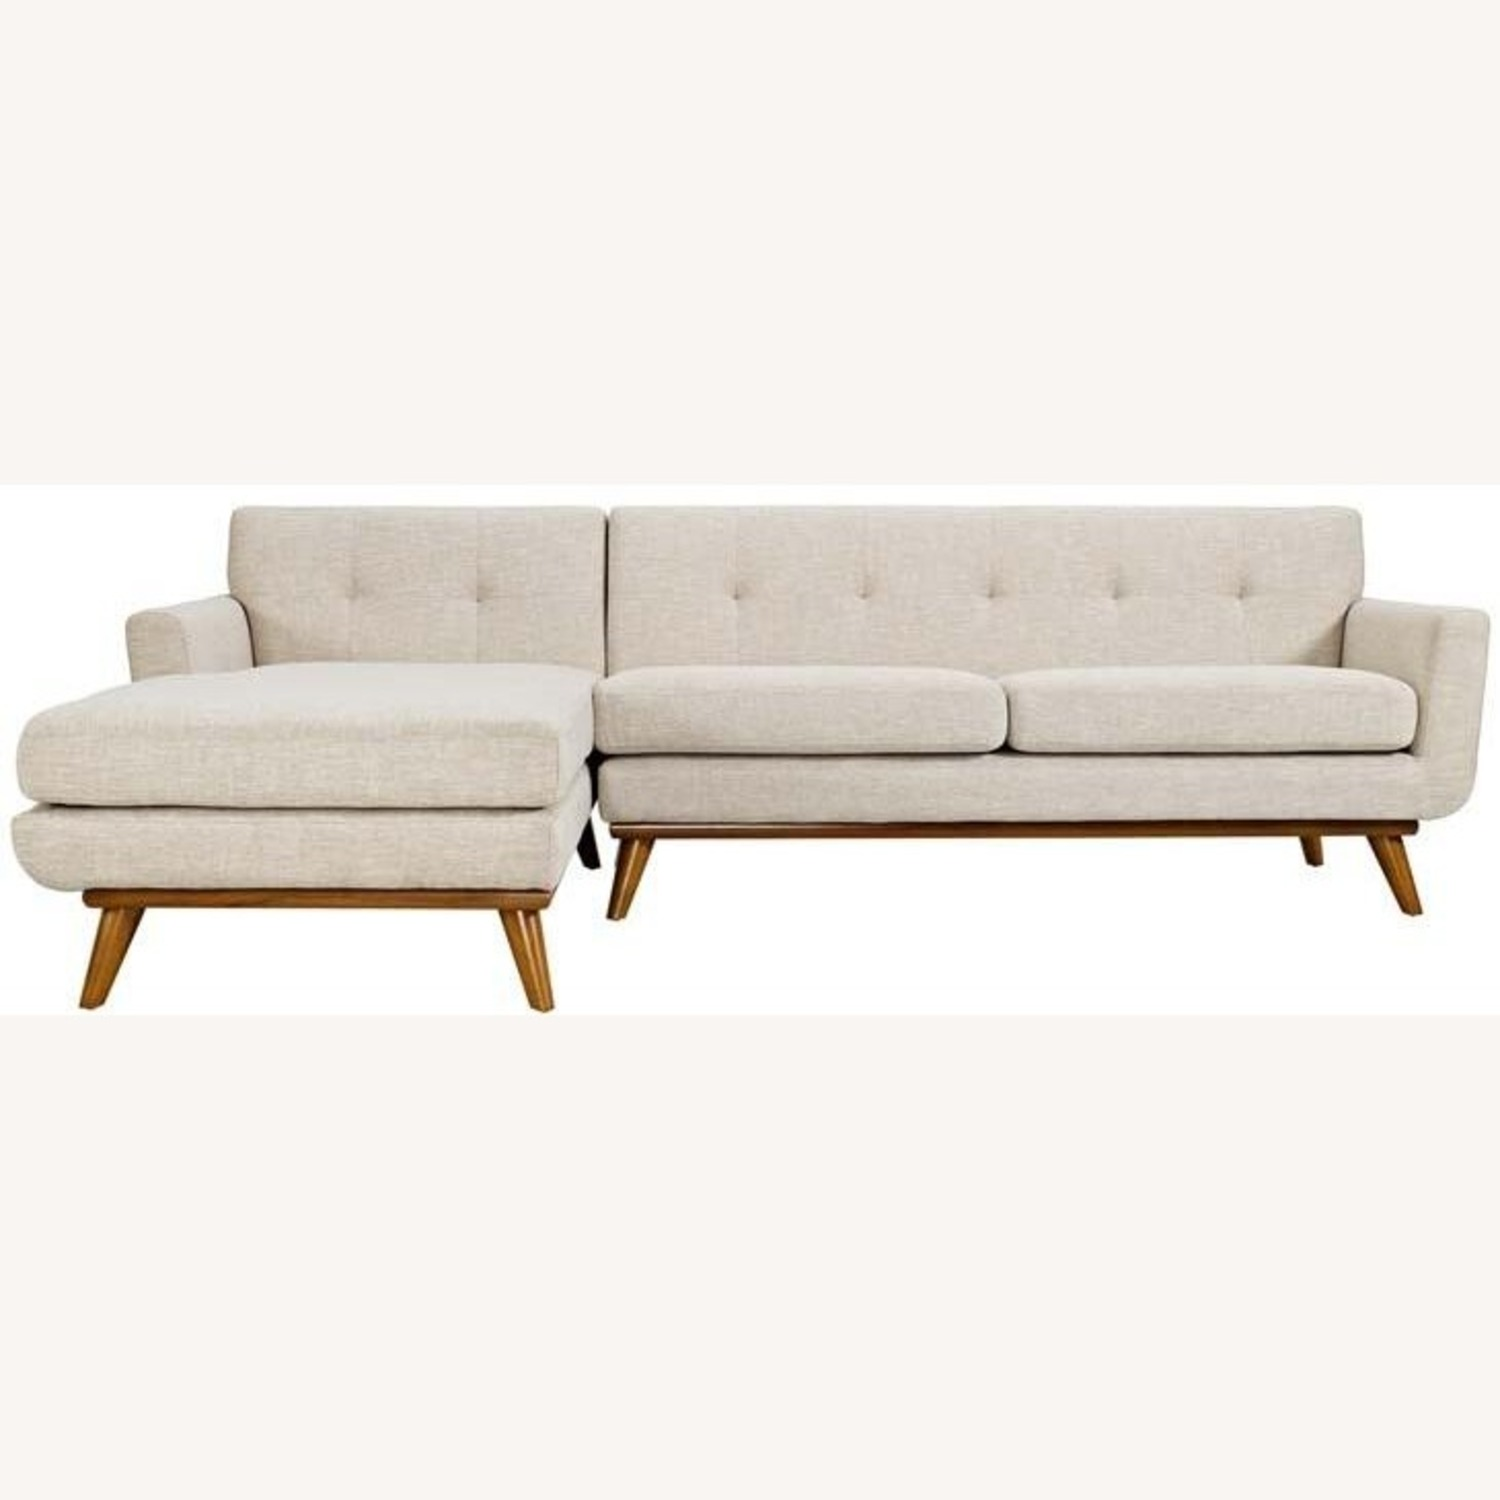 Left-Facing Sectional In Beige Upholstered Finish - image-2